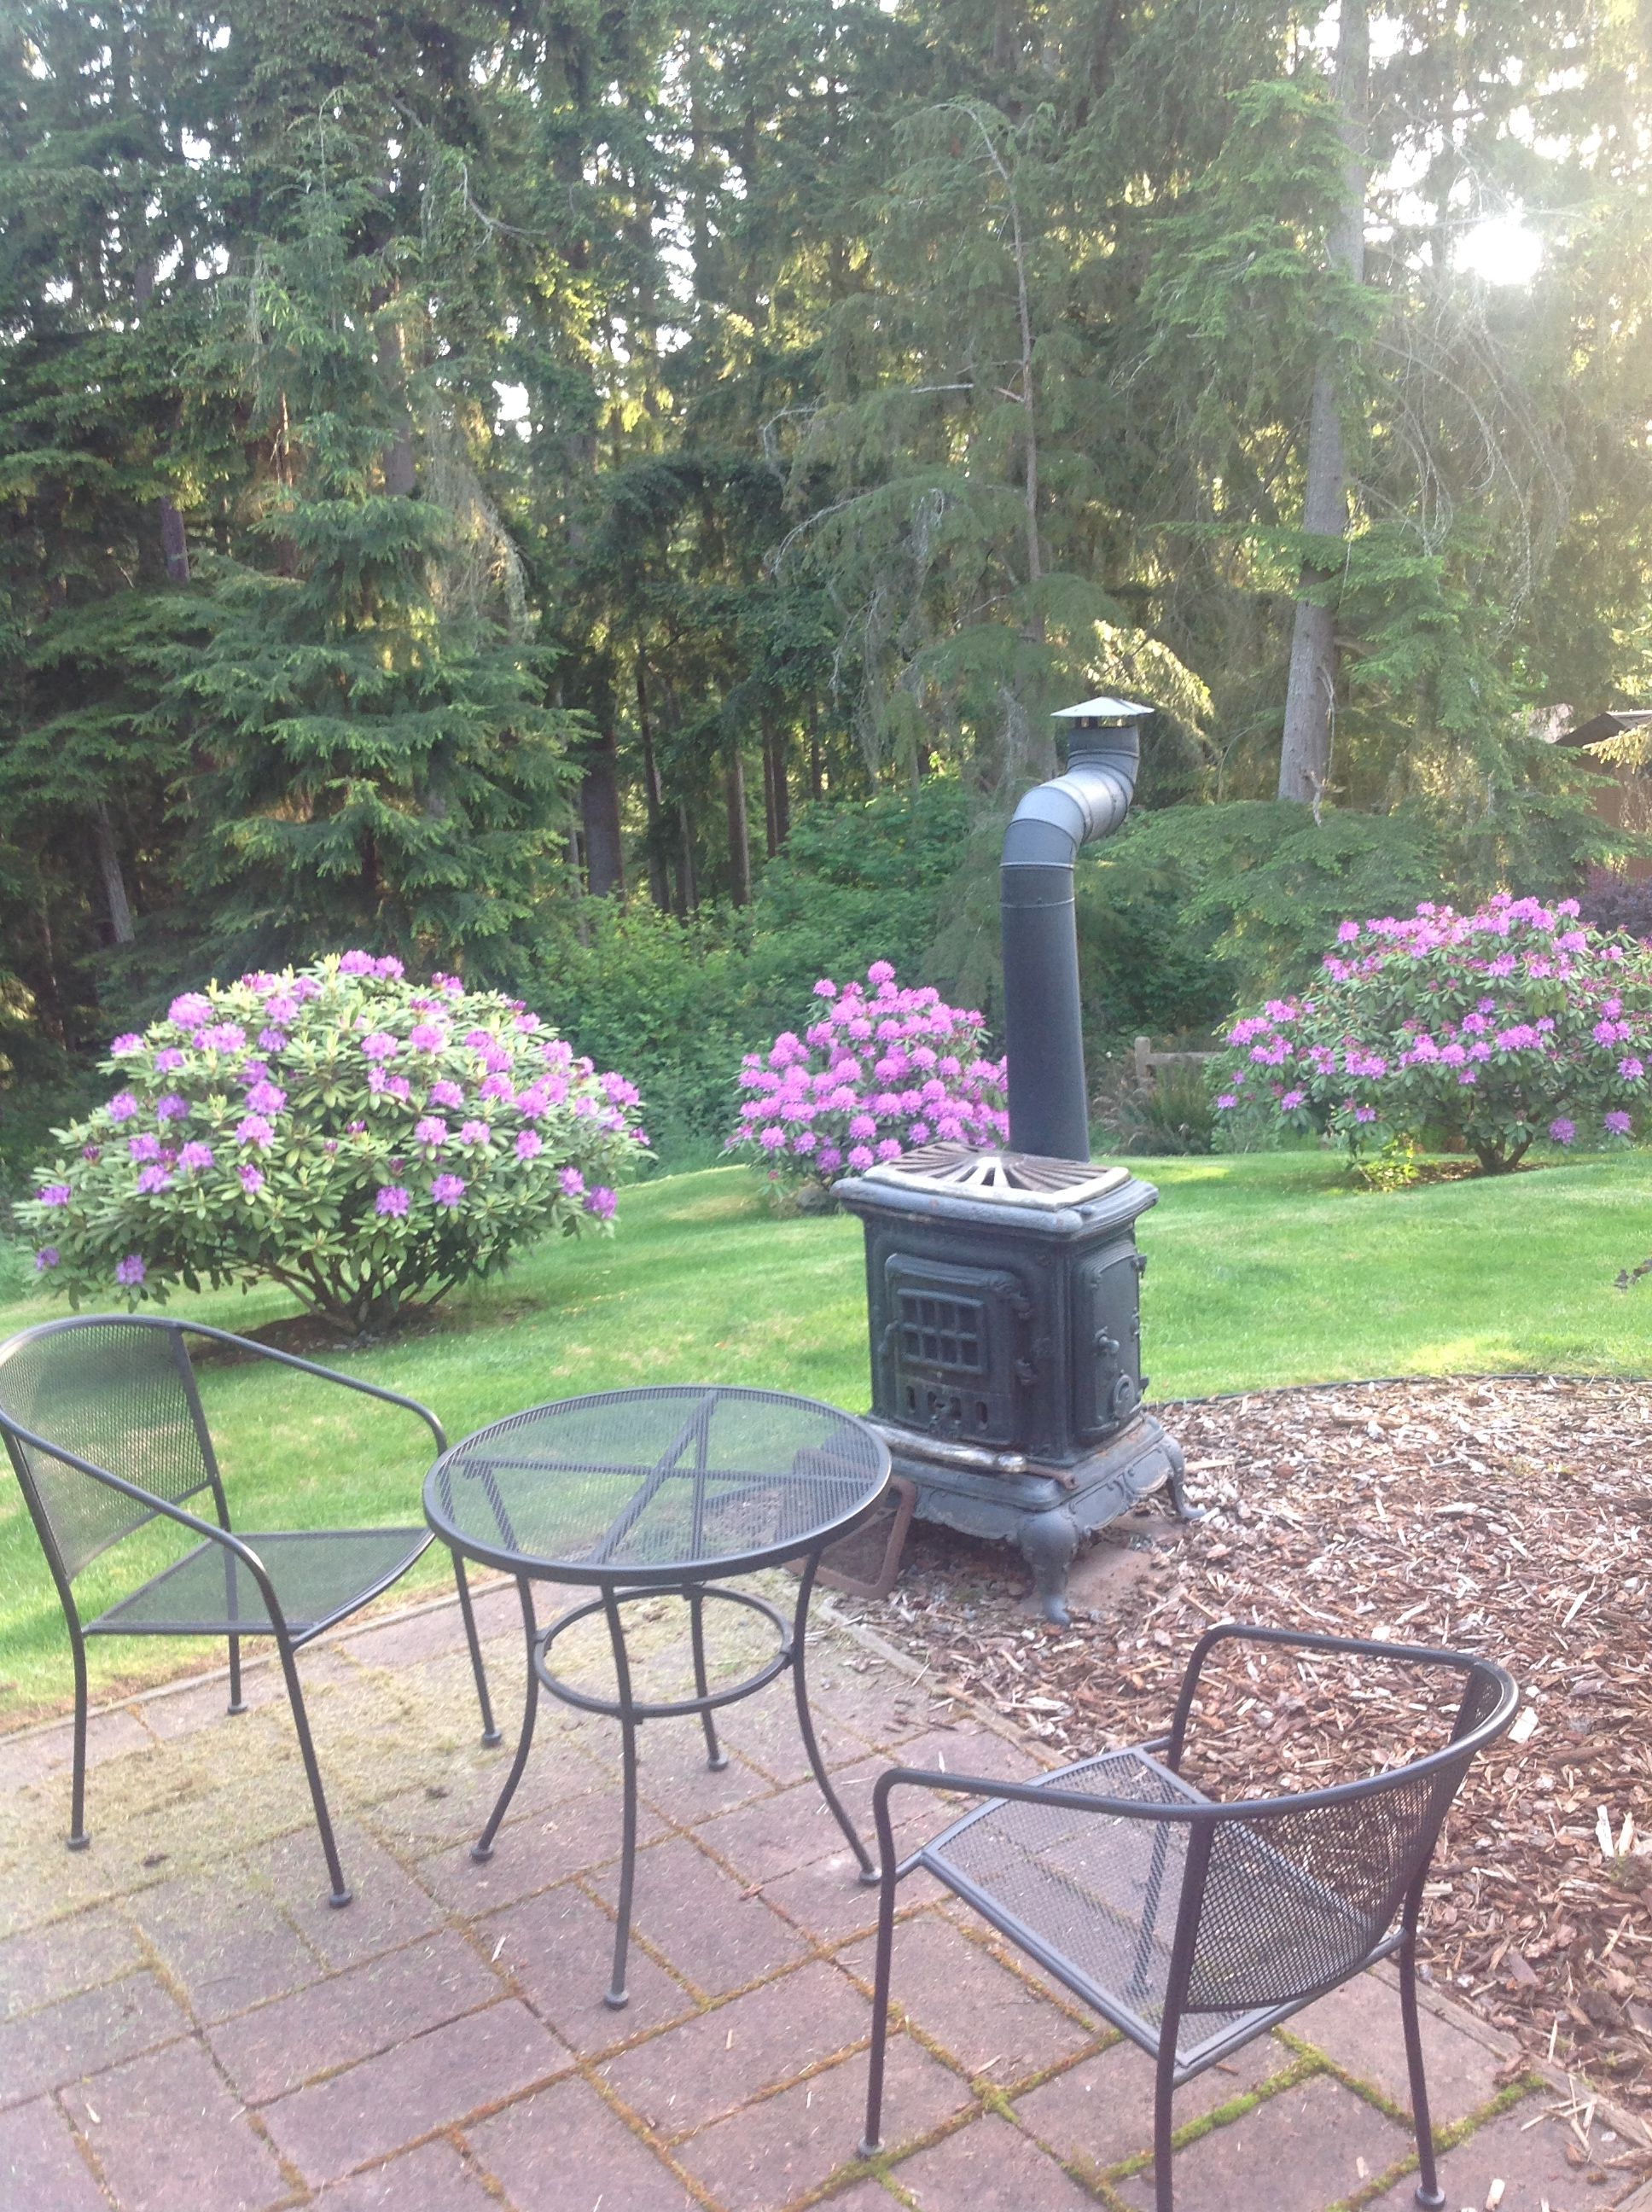 Superb Back Patio With The Outside Wood Stove We Use For Cooking Clams That We Dug  Down At Our Private Community Beach!